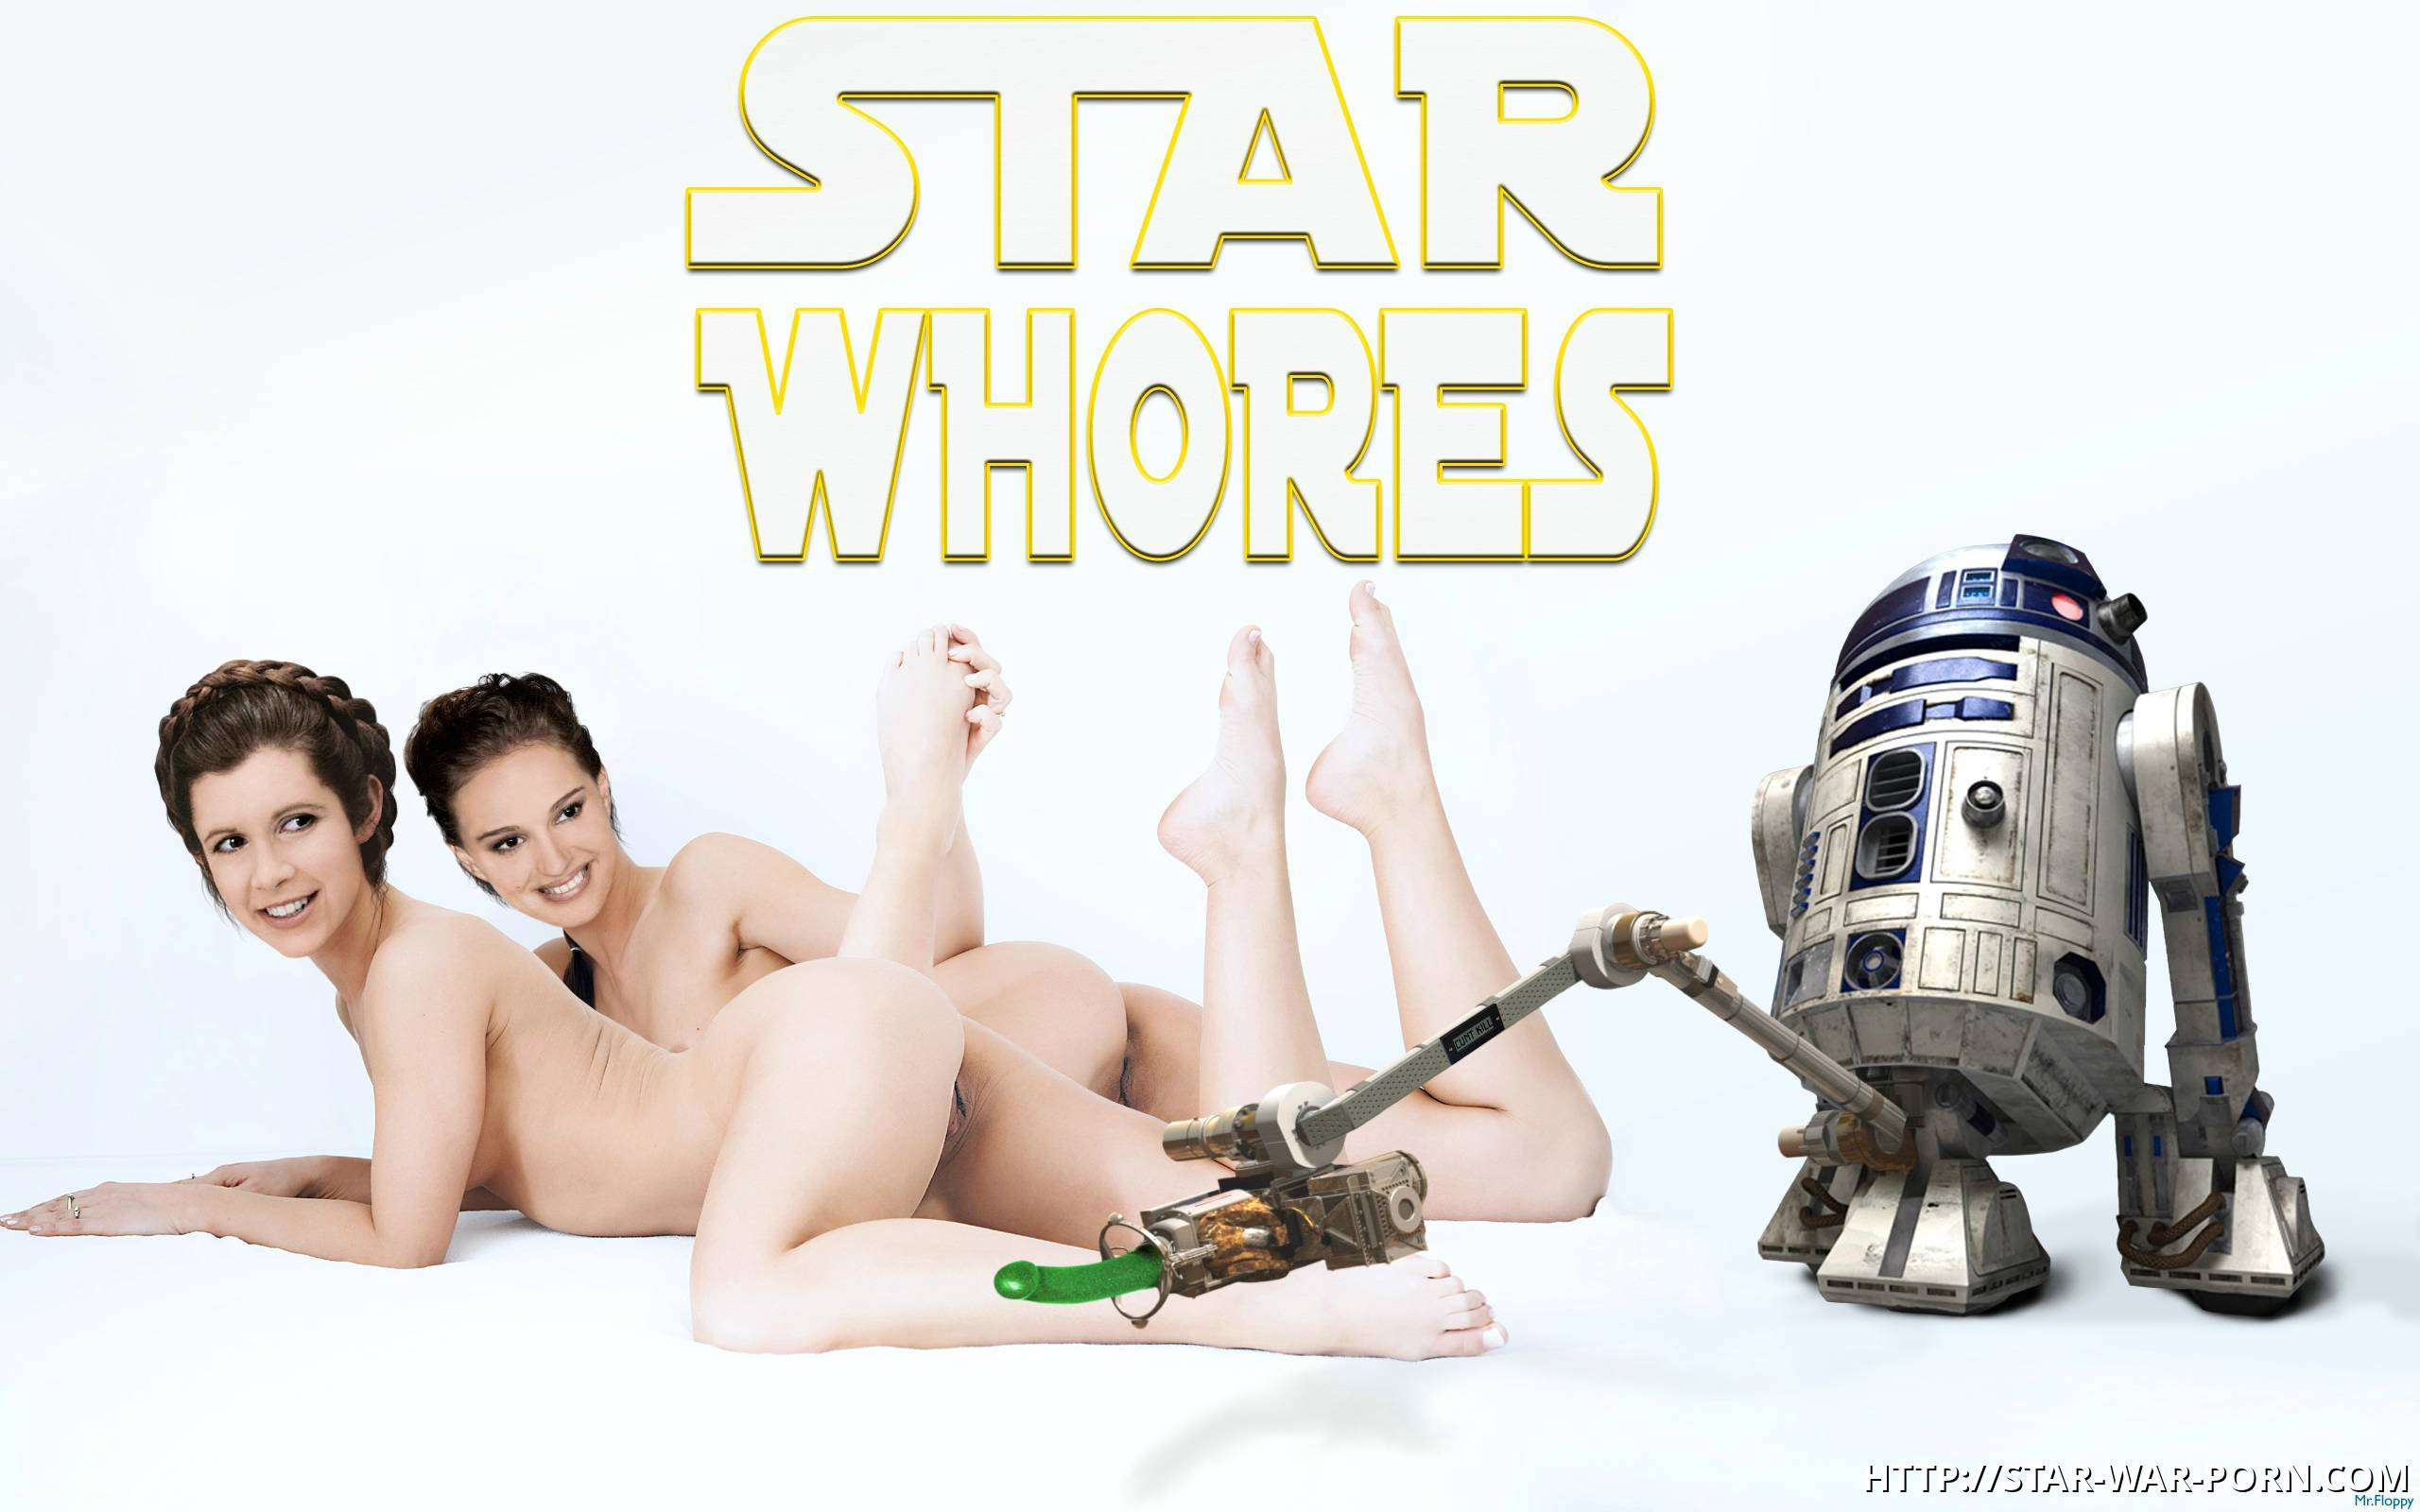 Star wars fake nudes erotic movie